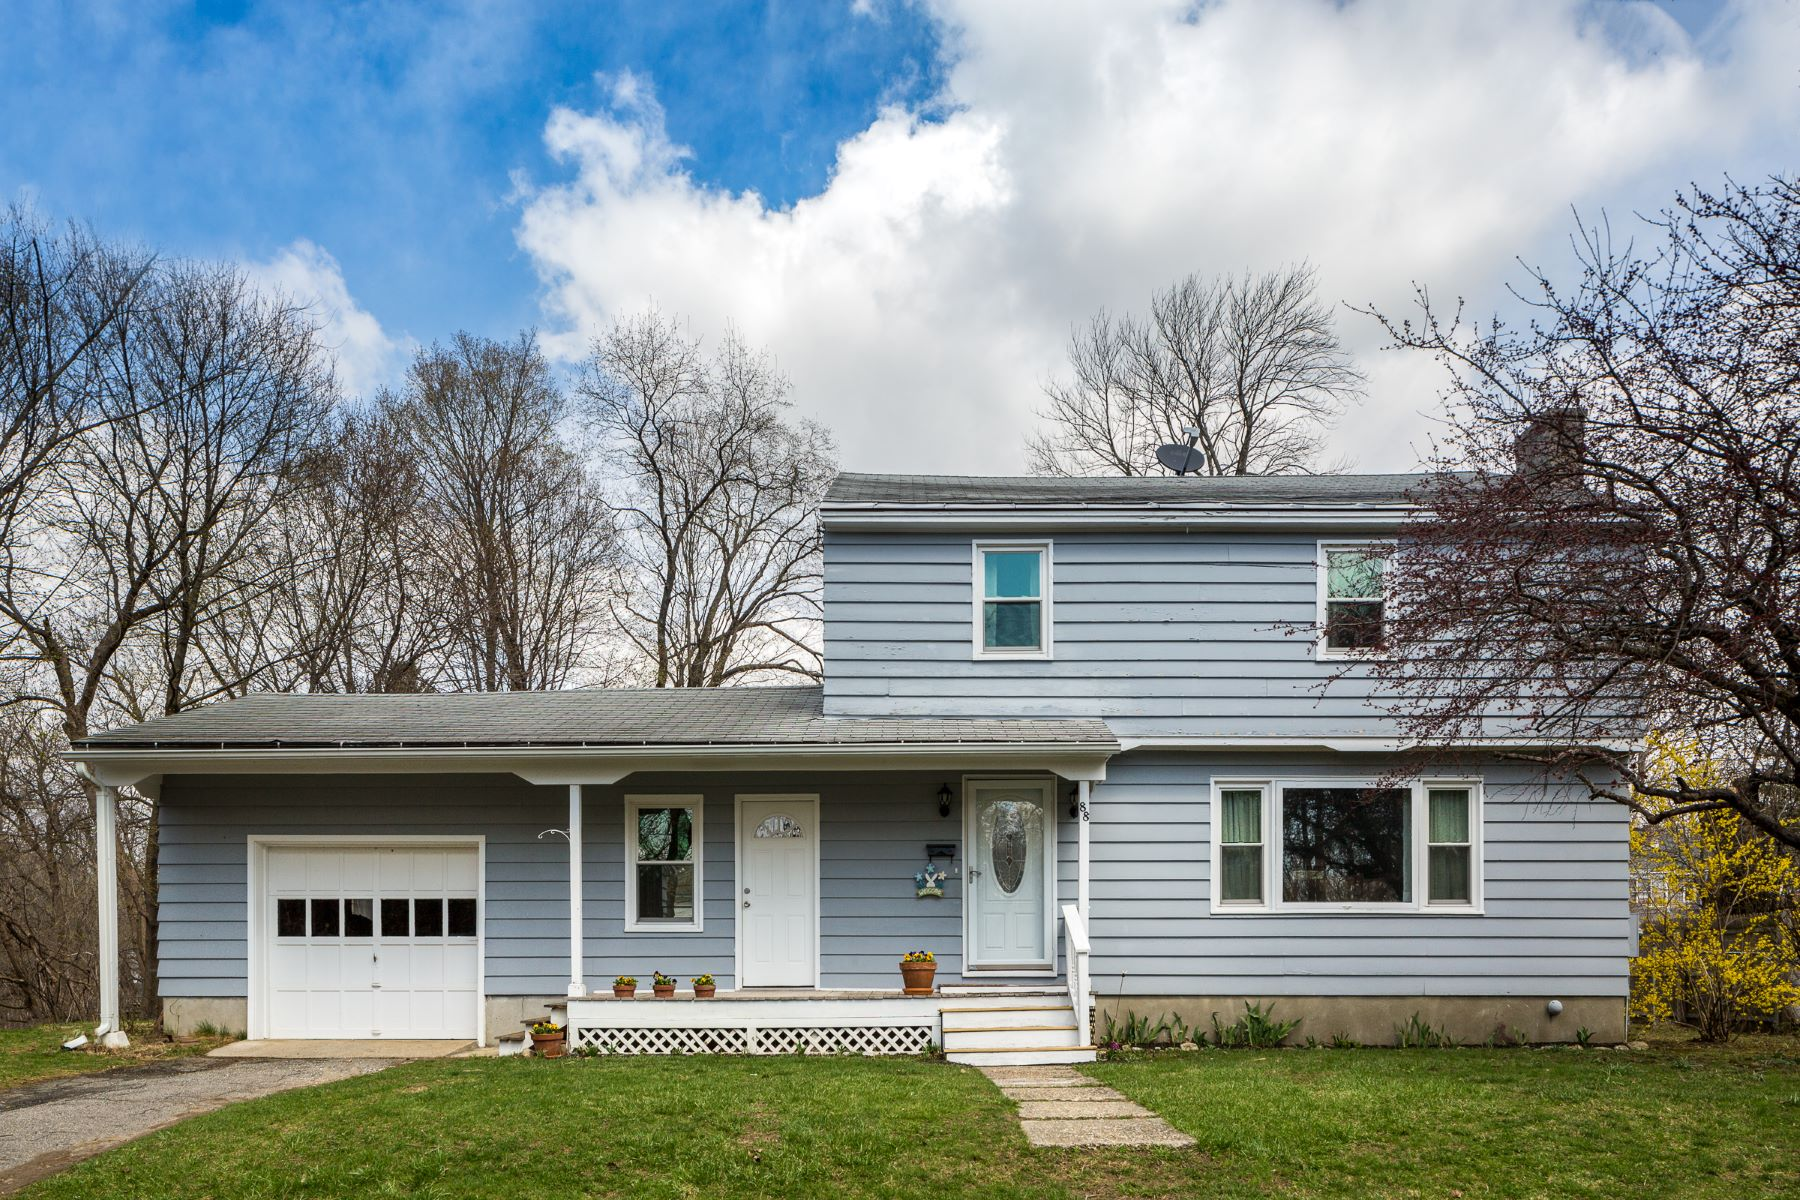 Single Family Home for Active at Well Maintained Colonial with Many Updates and Features! 88 Taylor St Pittsfield, Massachusetts 01201 United States